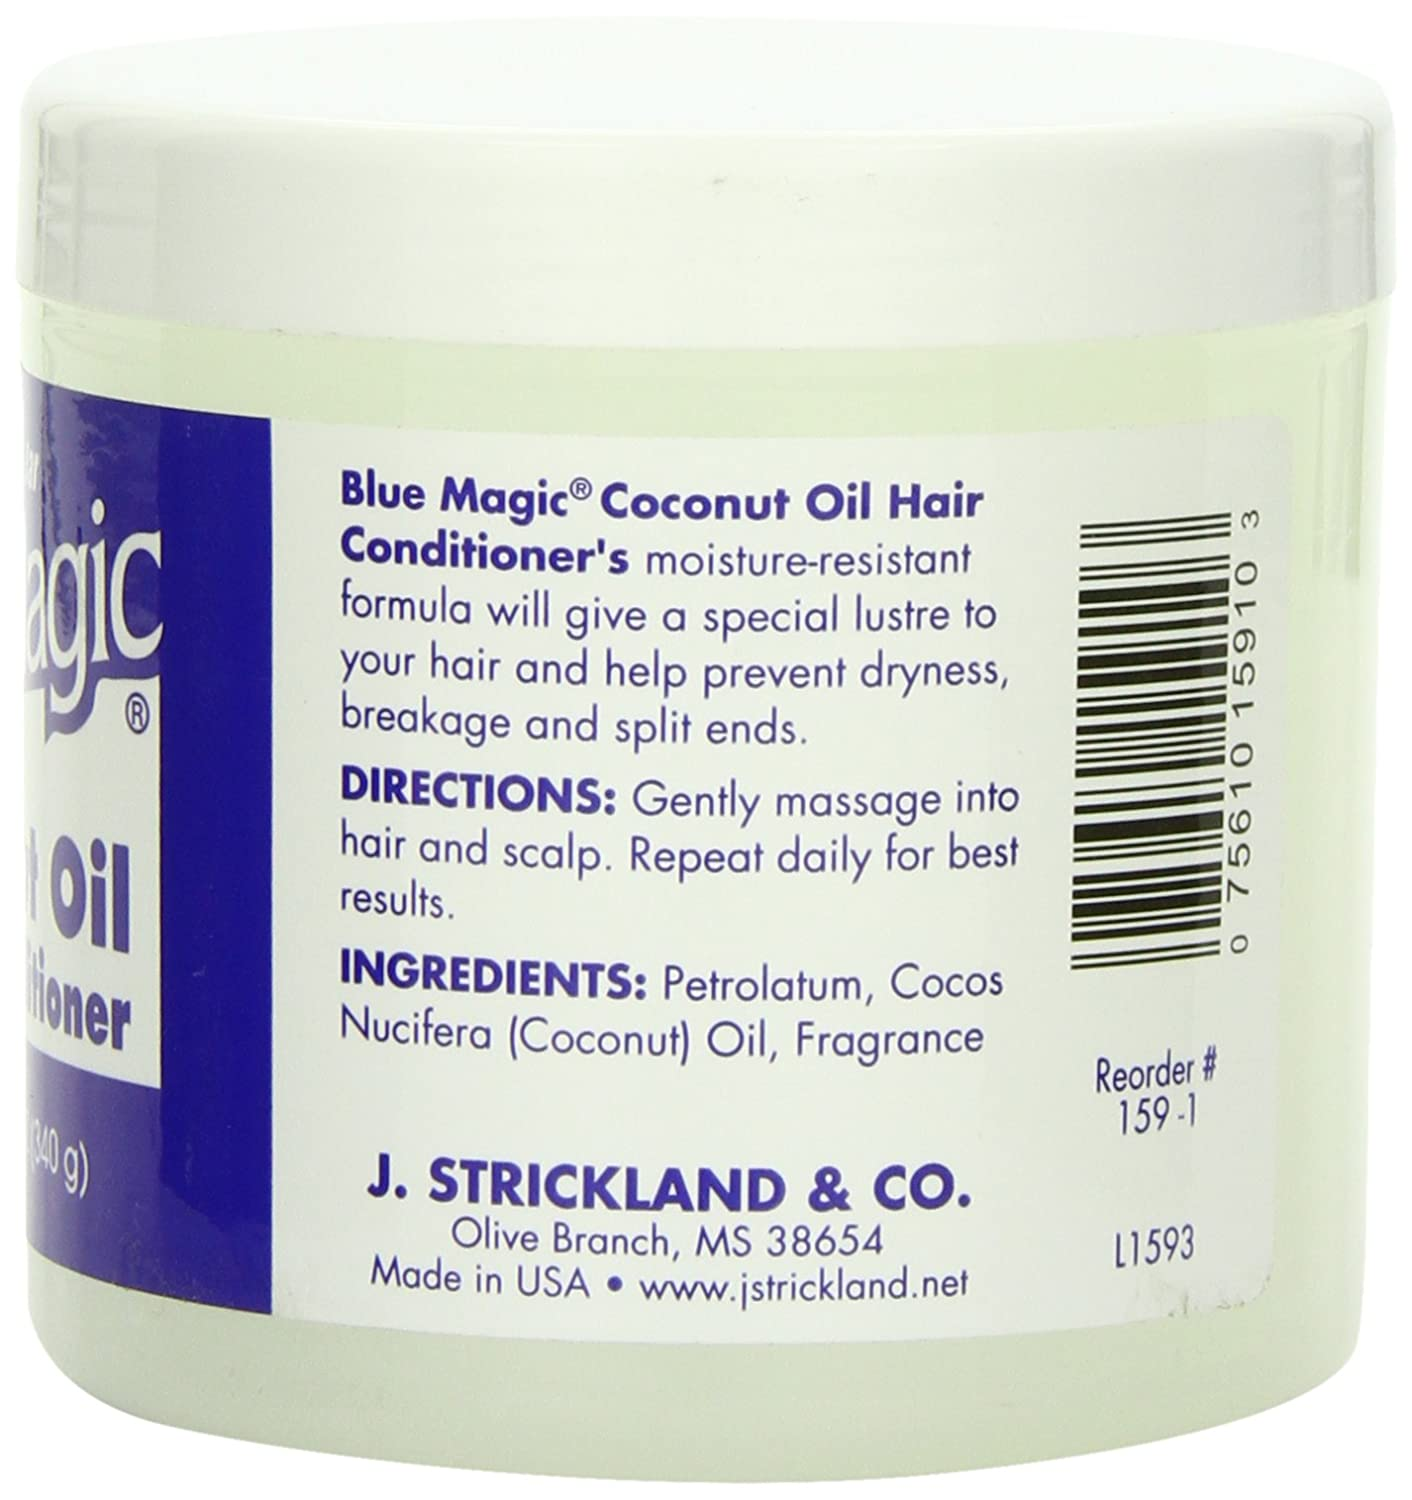 Amazoncom  Blue Magic Coconut Oil Hair Conditioner  Oz Pack - How to use coconut oil on hair